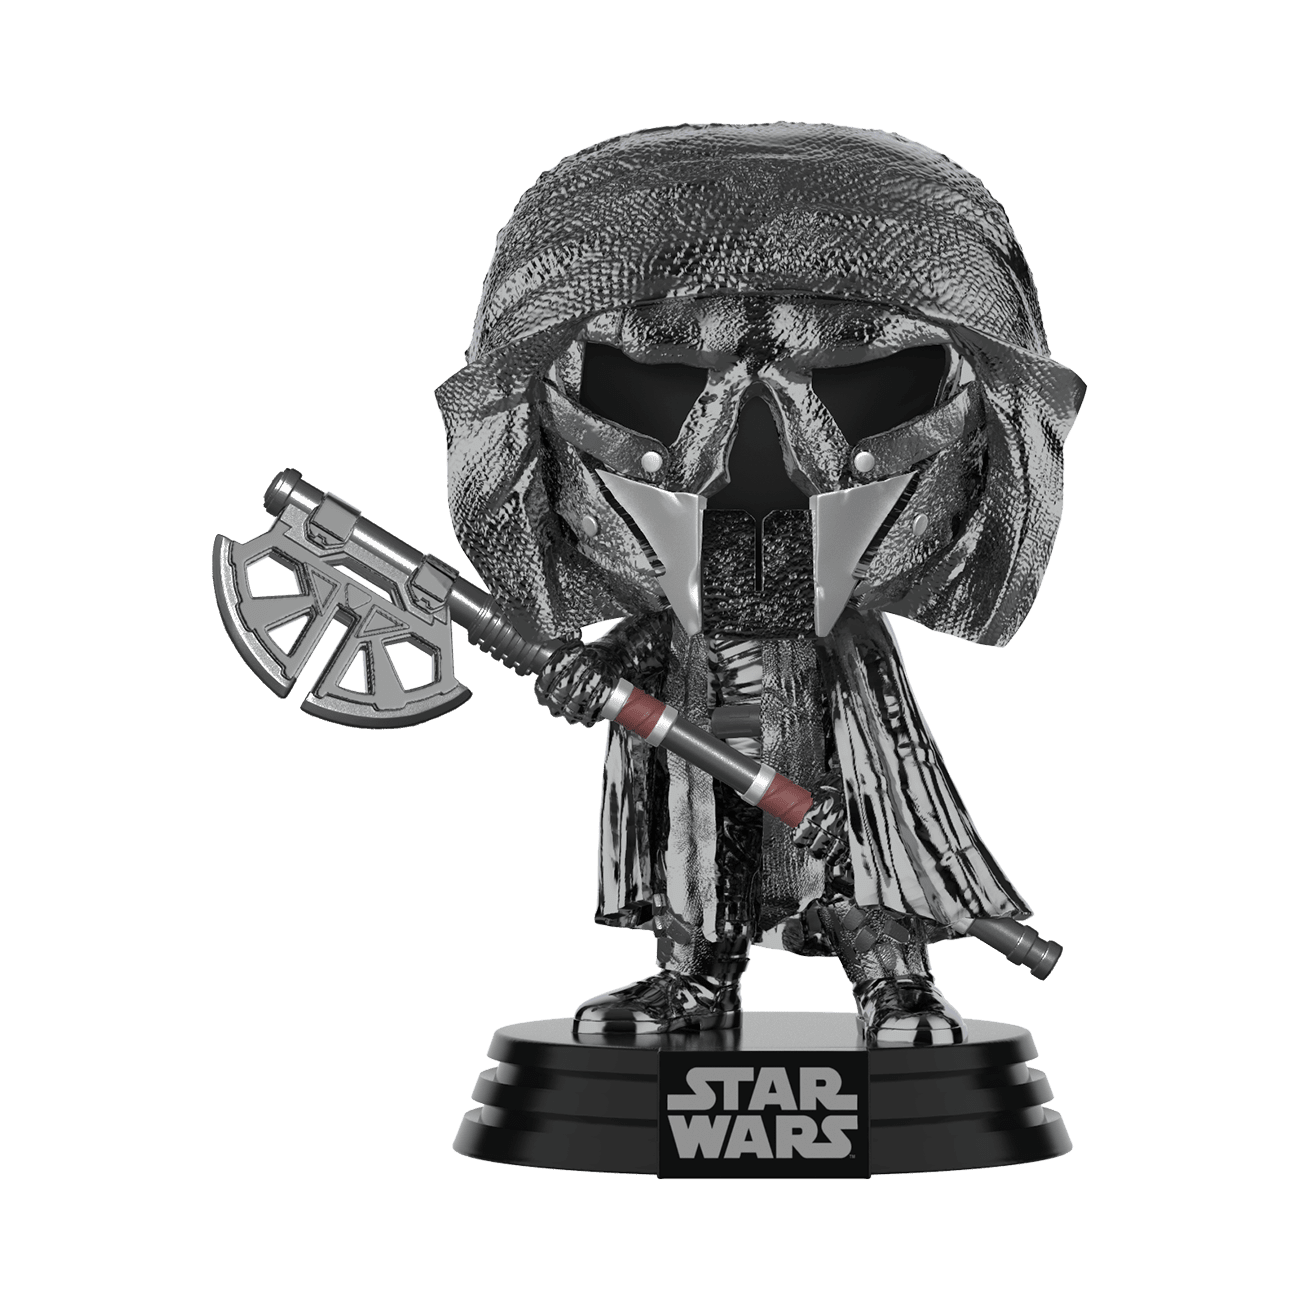 Star Wars: The Rise of Skywalker Hematite Chrome Knight of Ren Axe Pop! Vinyl Figure